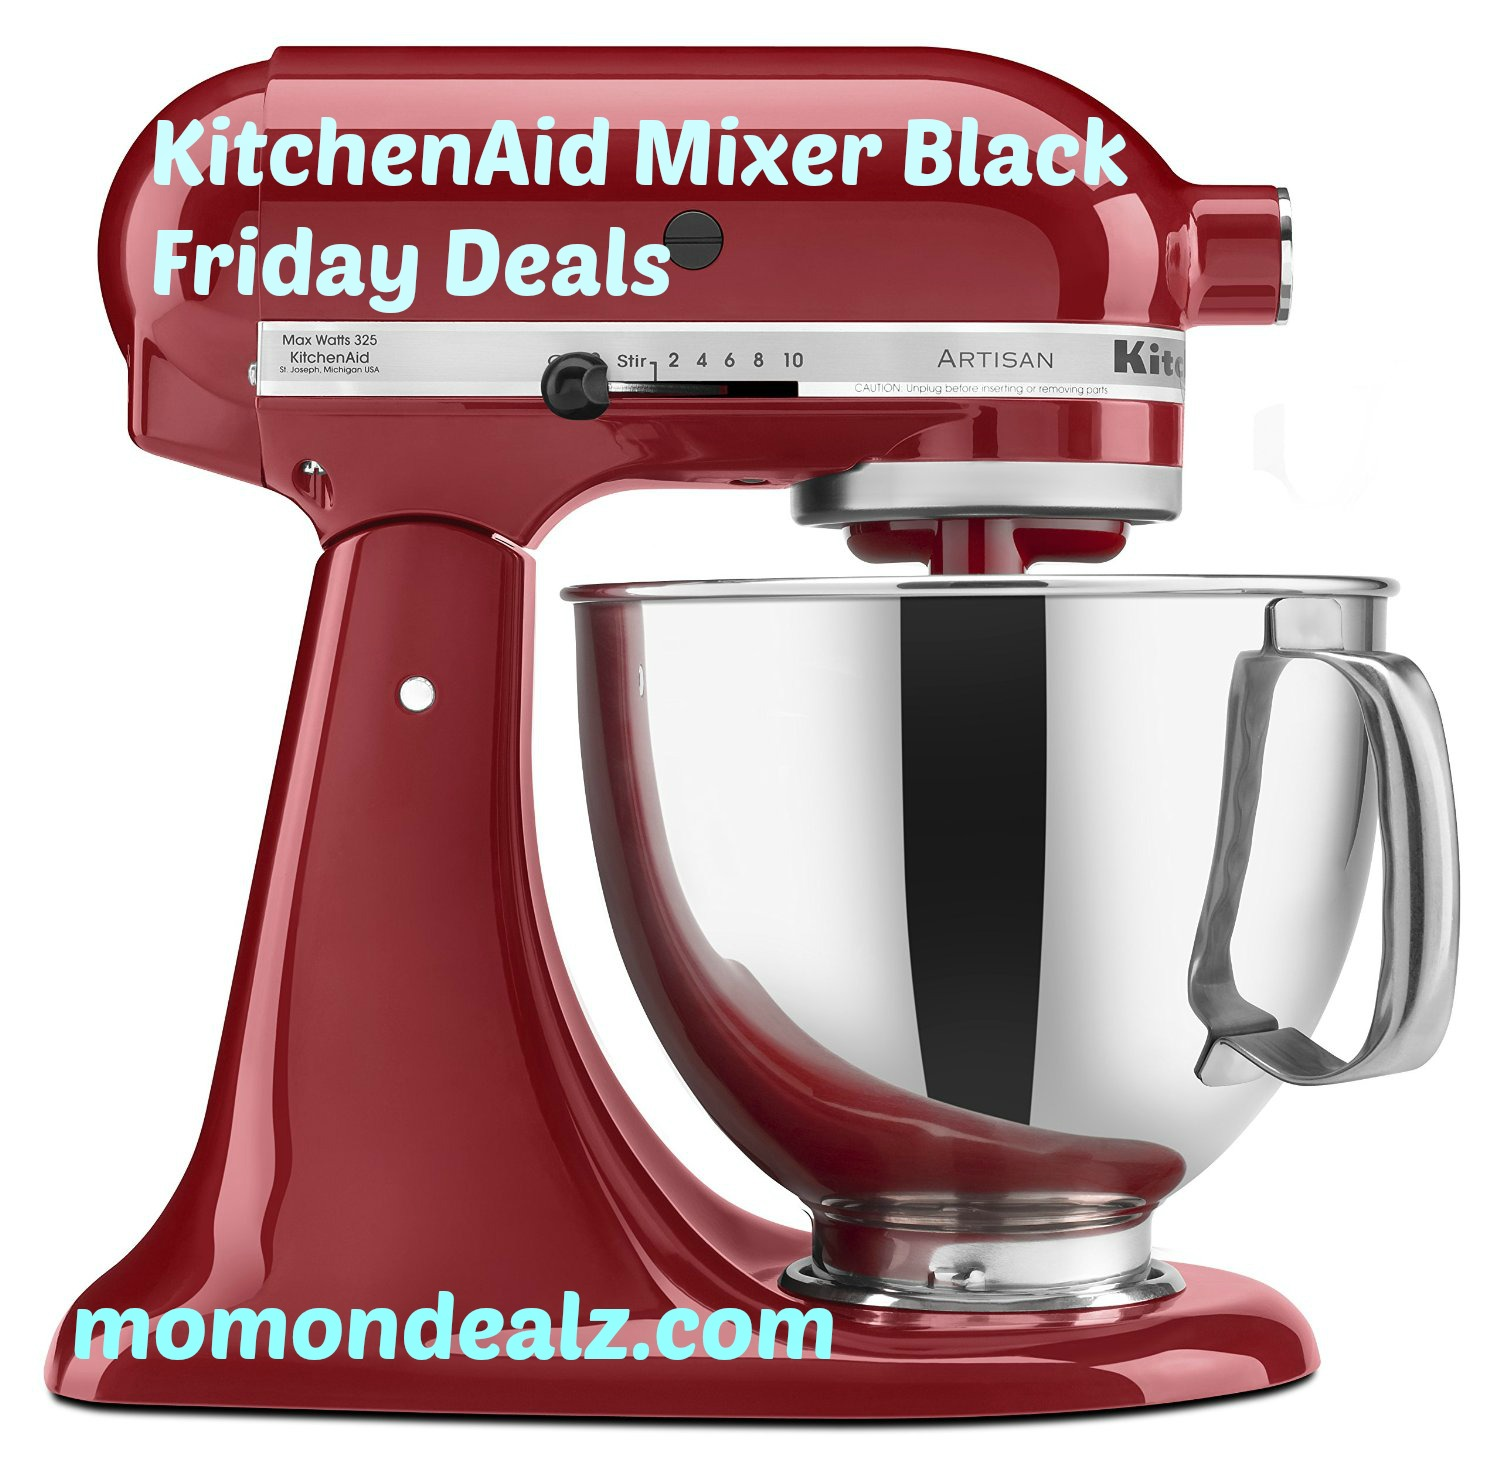 Black friday kitchen aid mixer Photo - 1